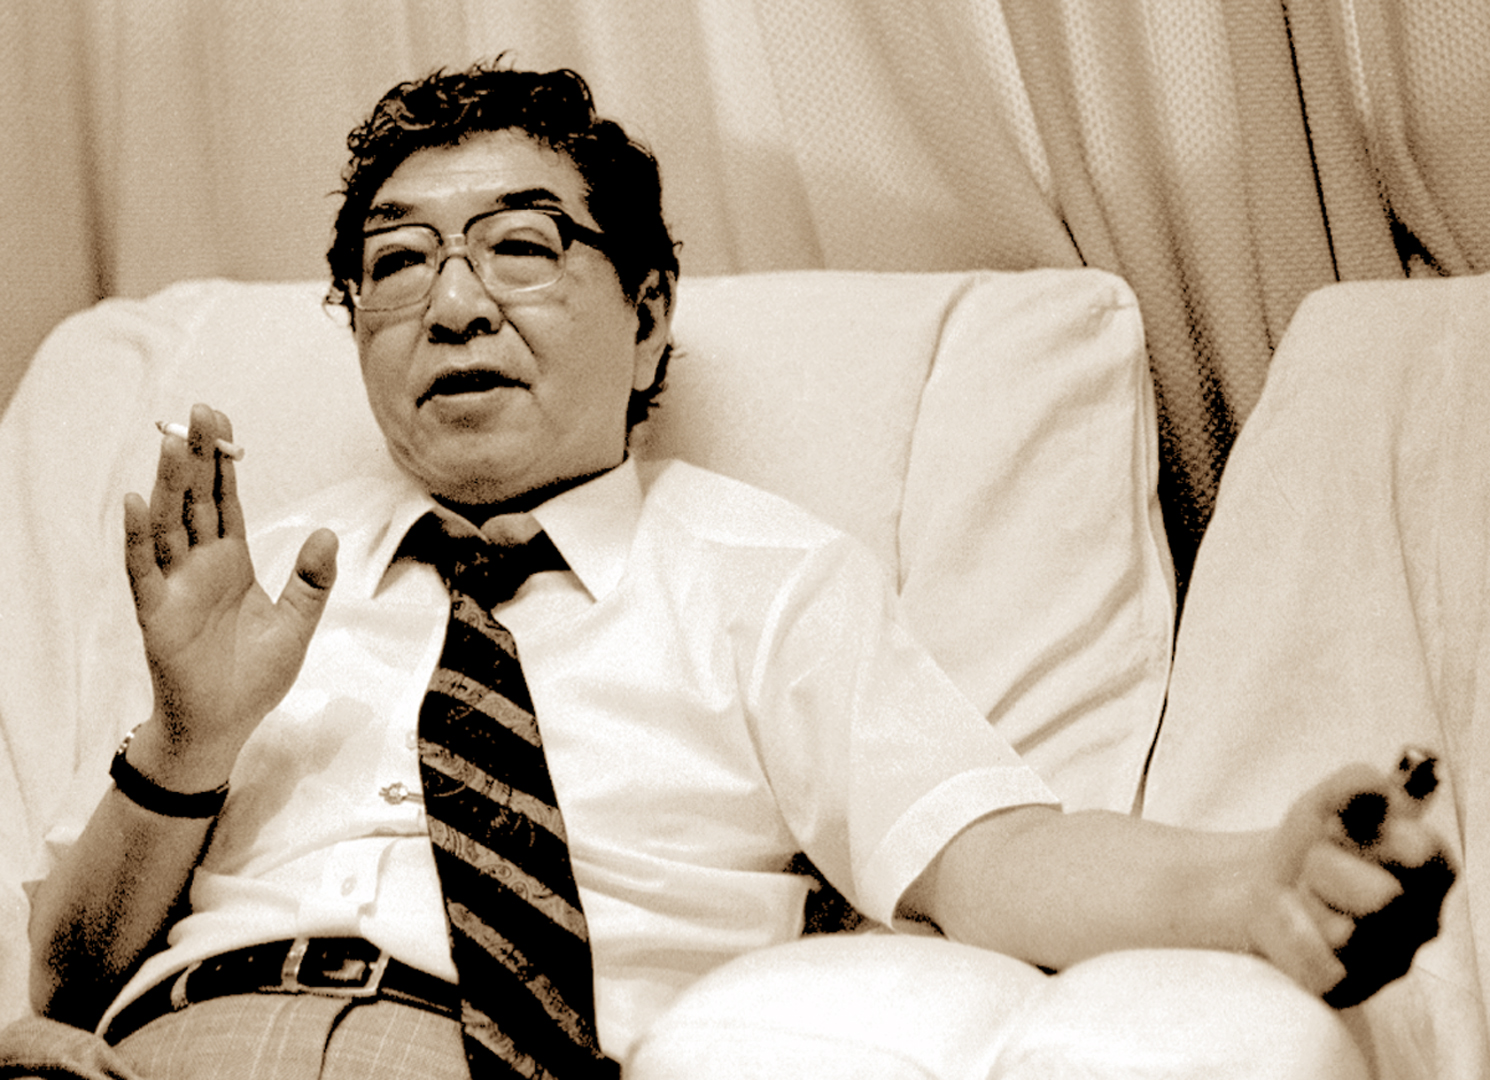 Image of Eikoh Hosoe from Wikidata